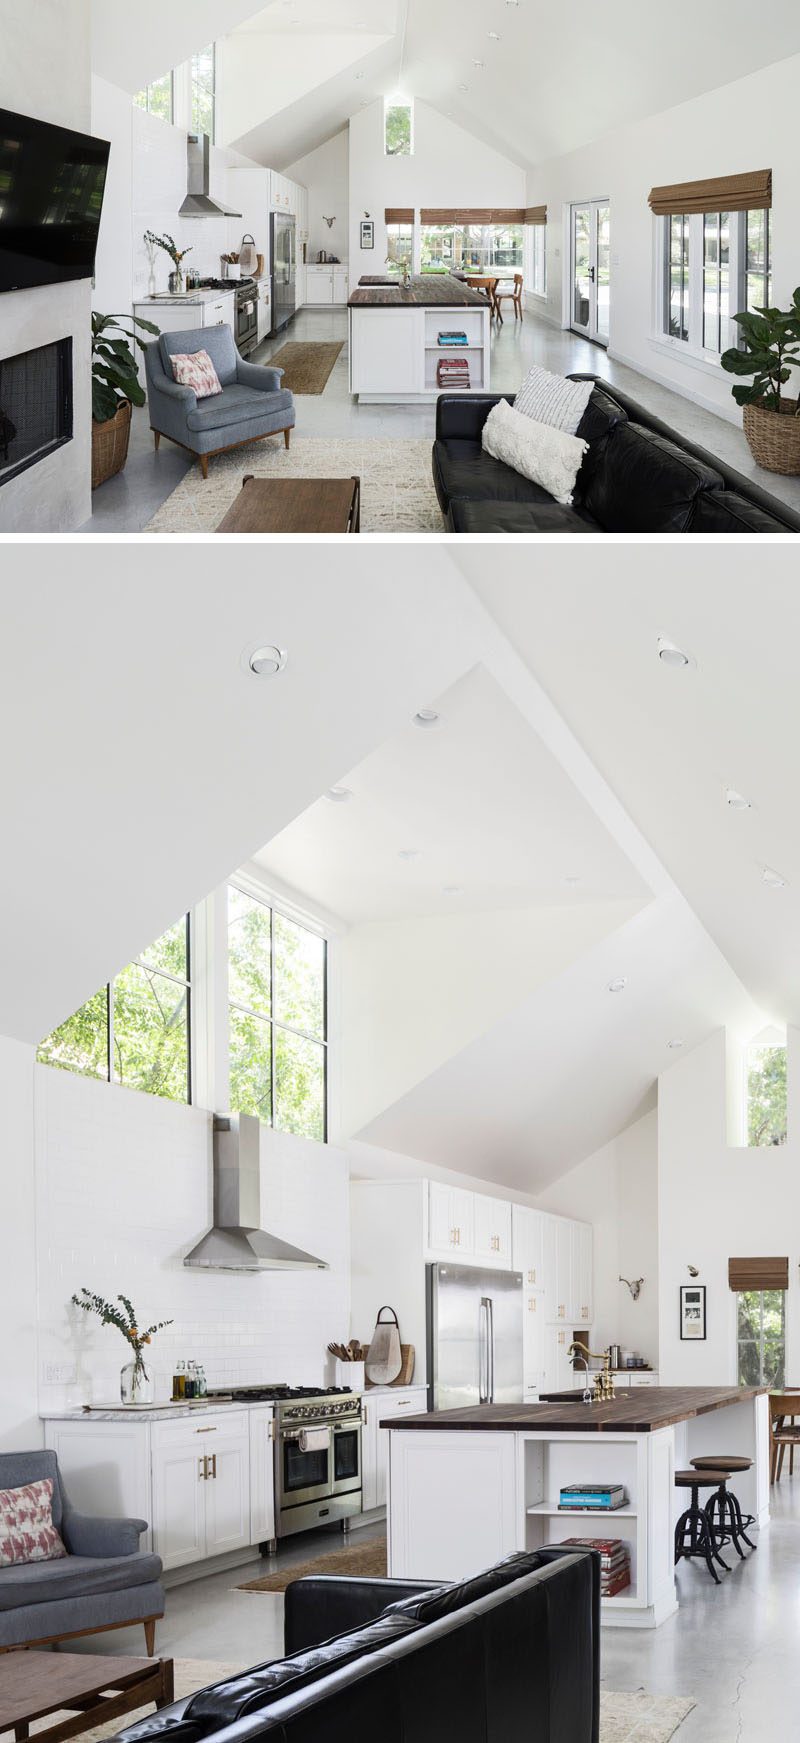 The living room, dining room and kitchen of this contemporary house all share the same open space with a pitched ceiling. The room is filled with natural light from the abundance of windows that look out onto the backyard. #Kitchen #Windows #OpenLivingSpace